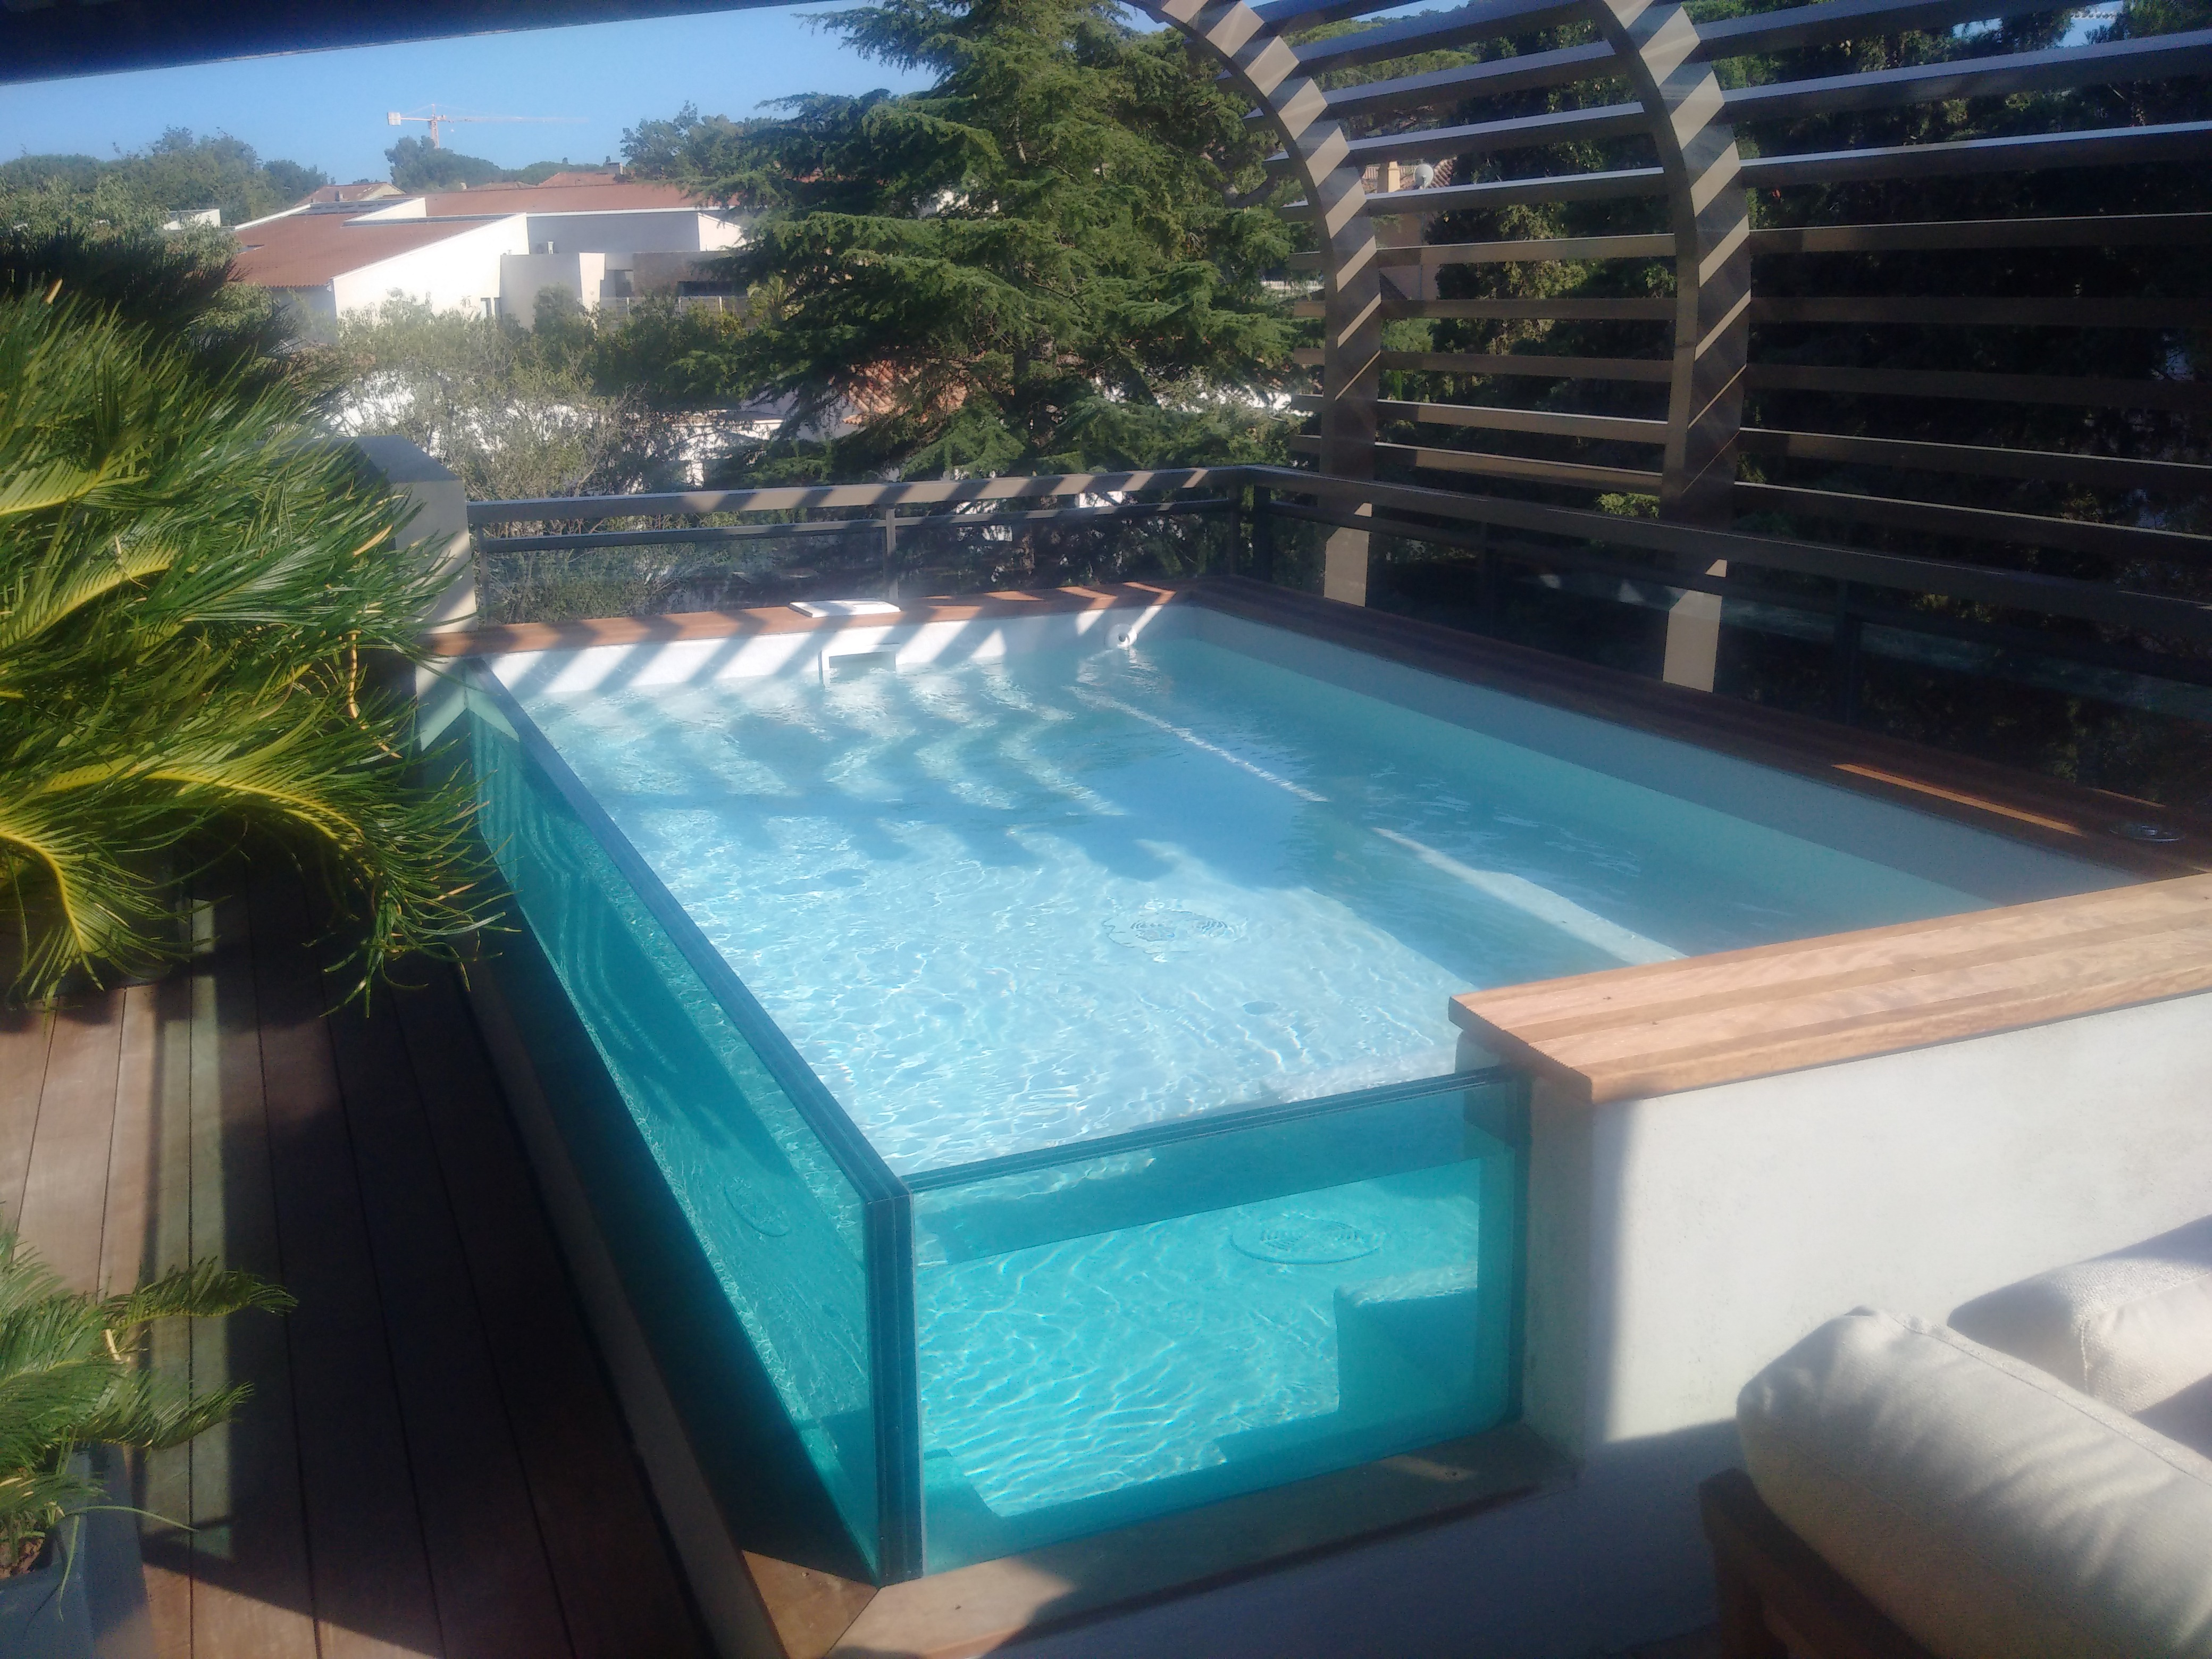 La piscine aquaset brignoles var draguignan fr jus for Verre filtration piscine